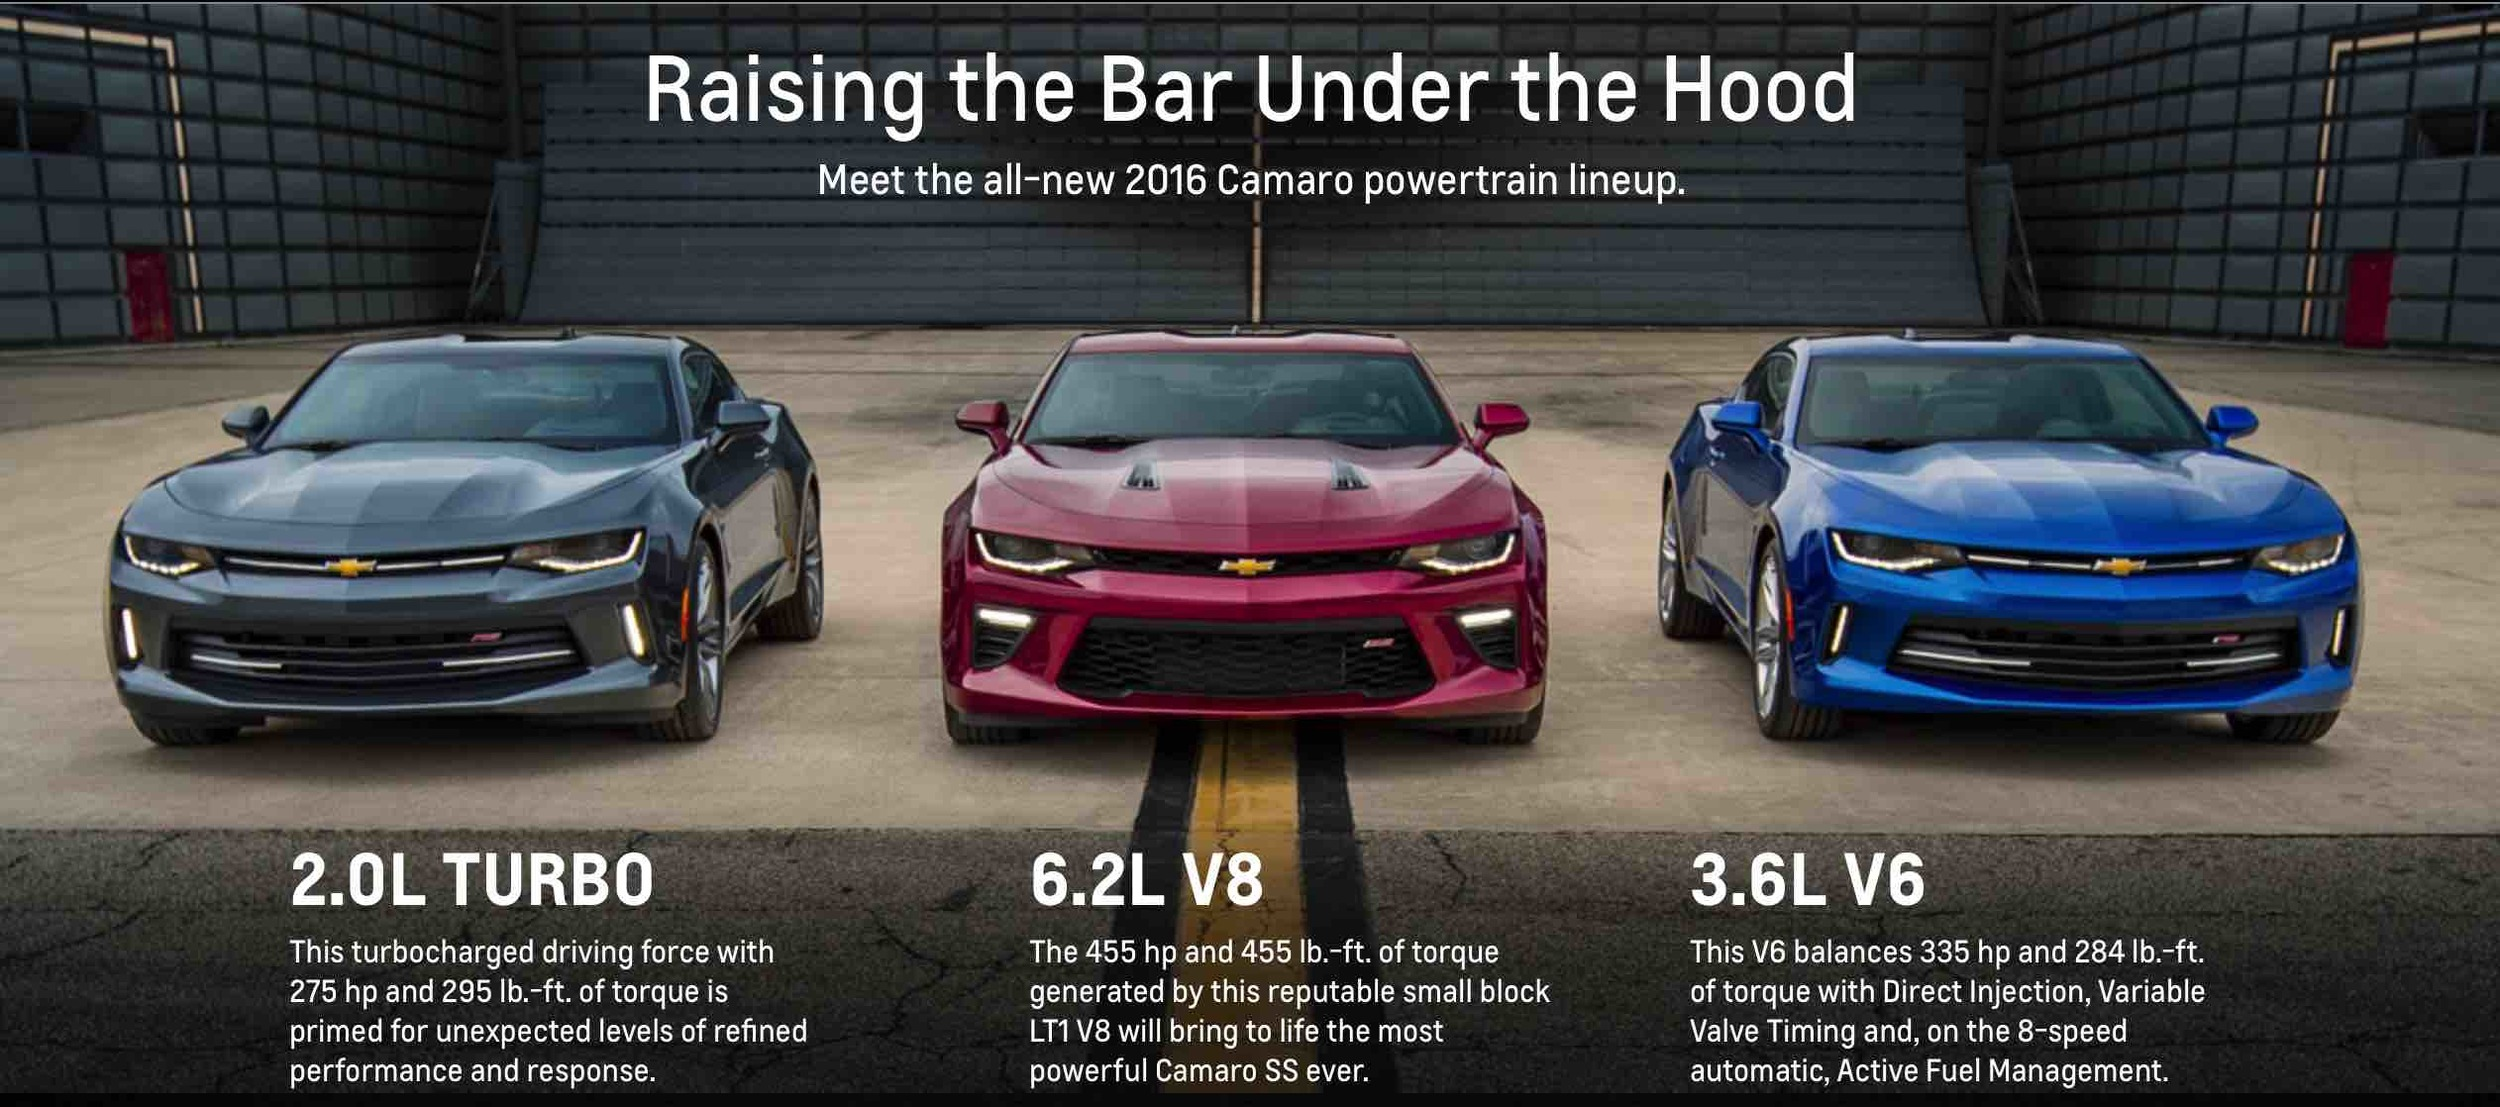 Photo of the 2016 Camaro lineup courtesy of Chevrolet http://www.chevrolet.com/2016-camaro/